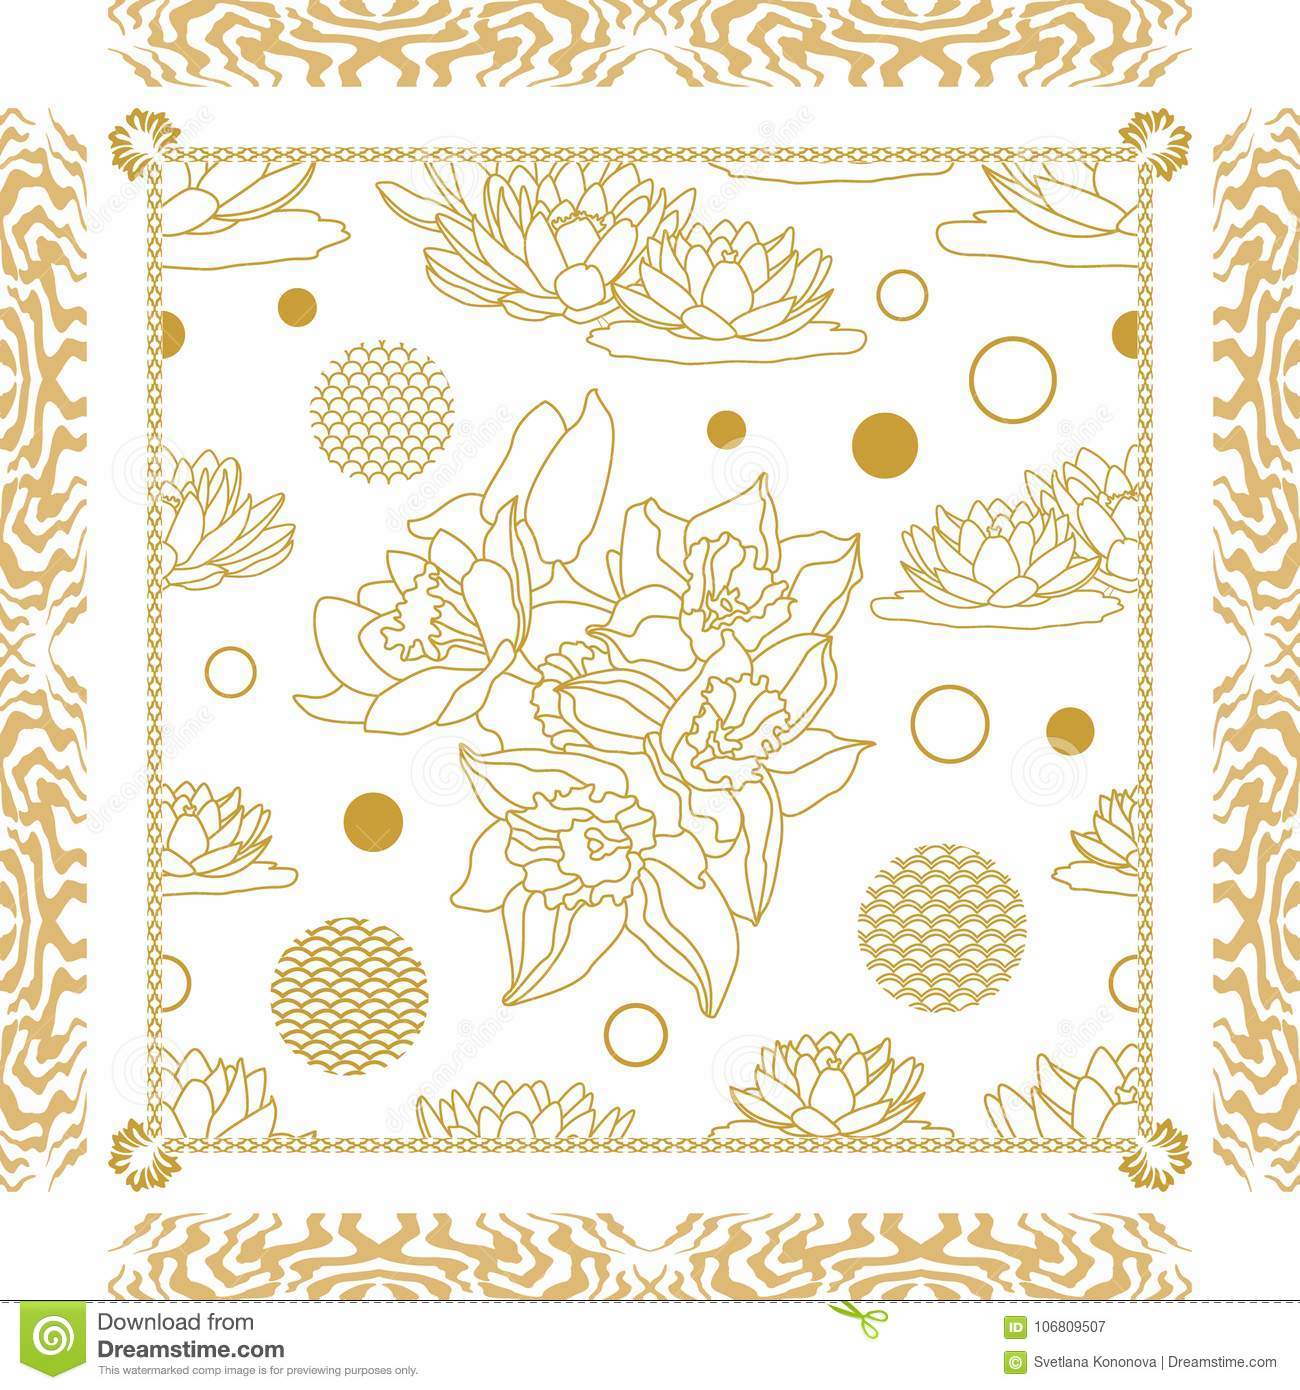 8ad13132c05 Linear botanical pattern with retro motifs. Vintage textile collection.